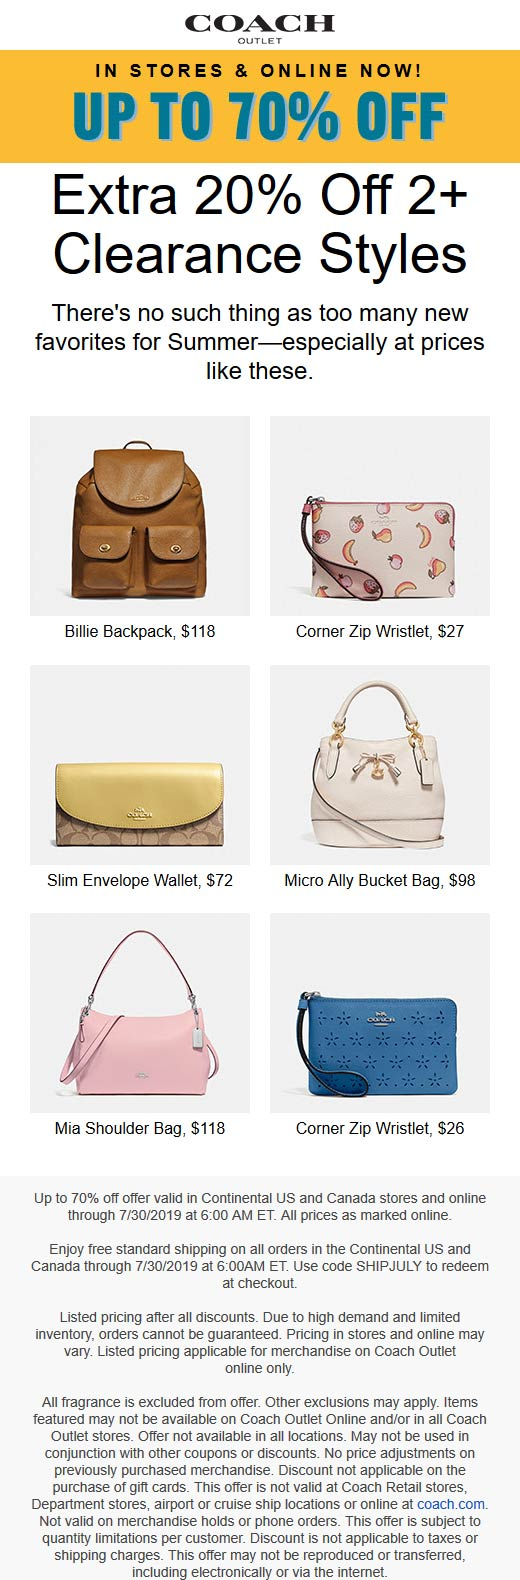 Coach Outlet coupons & promo code for [April 2021]